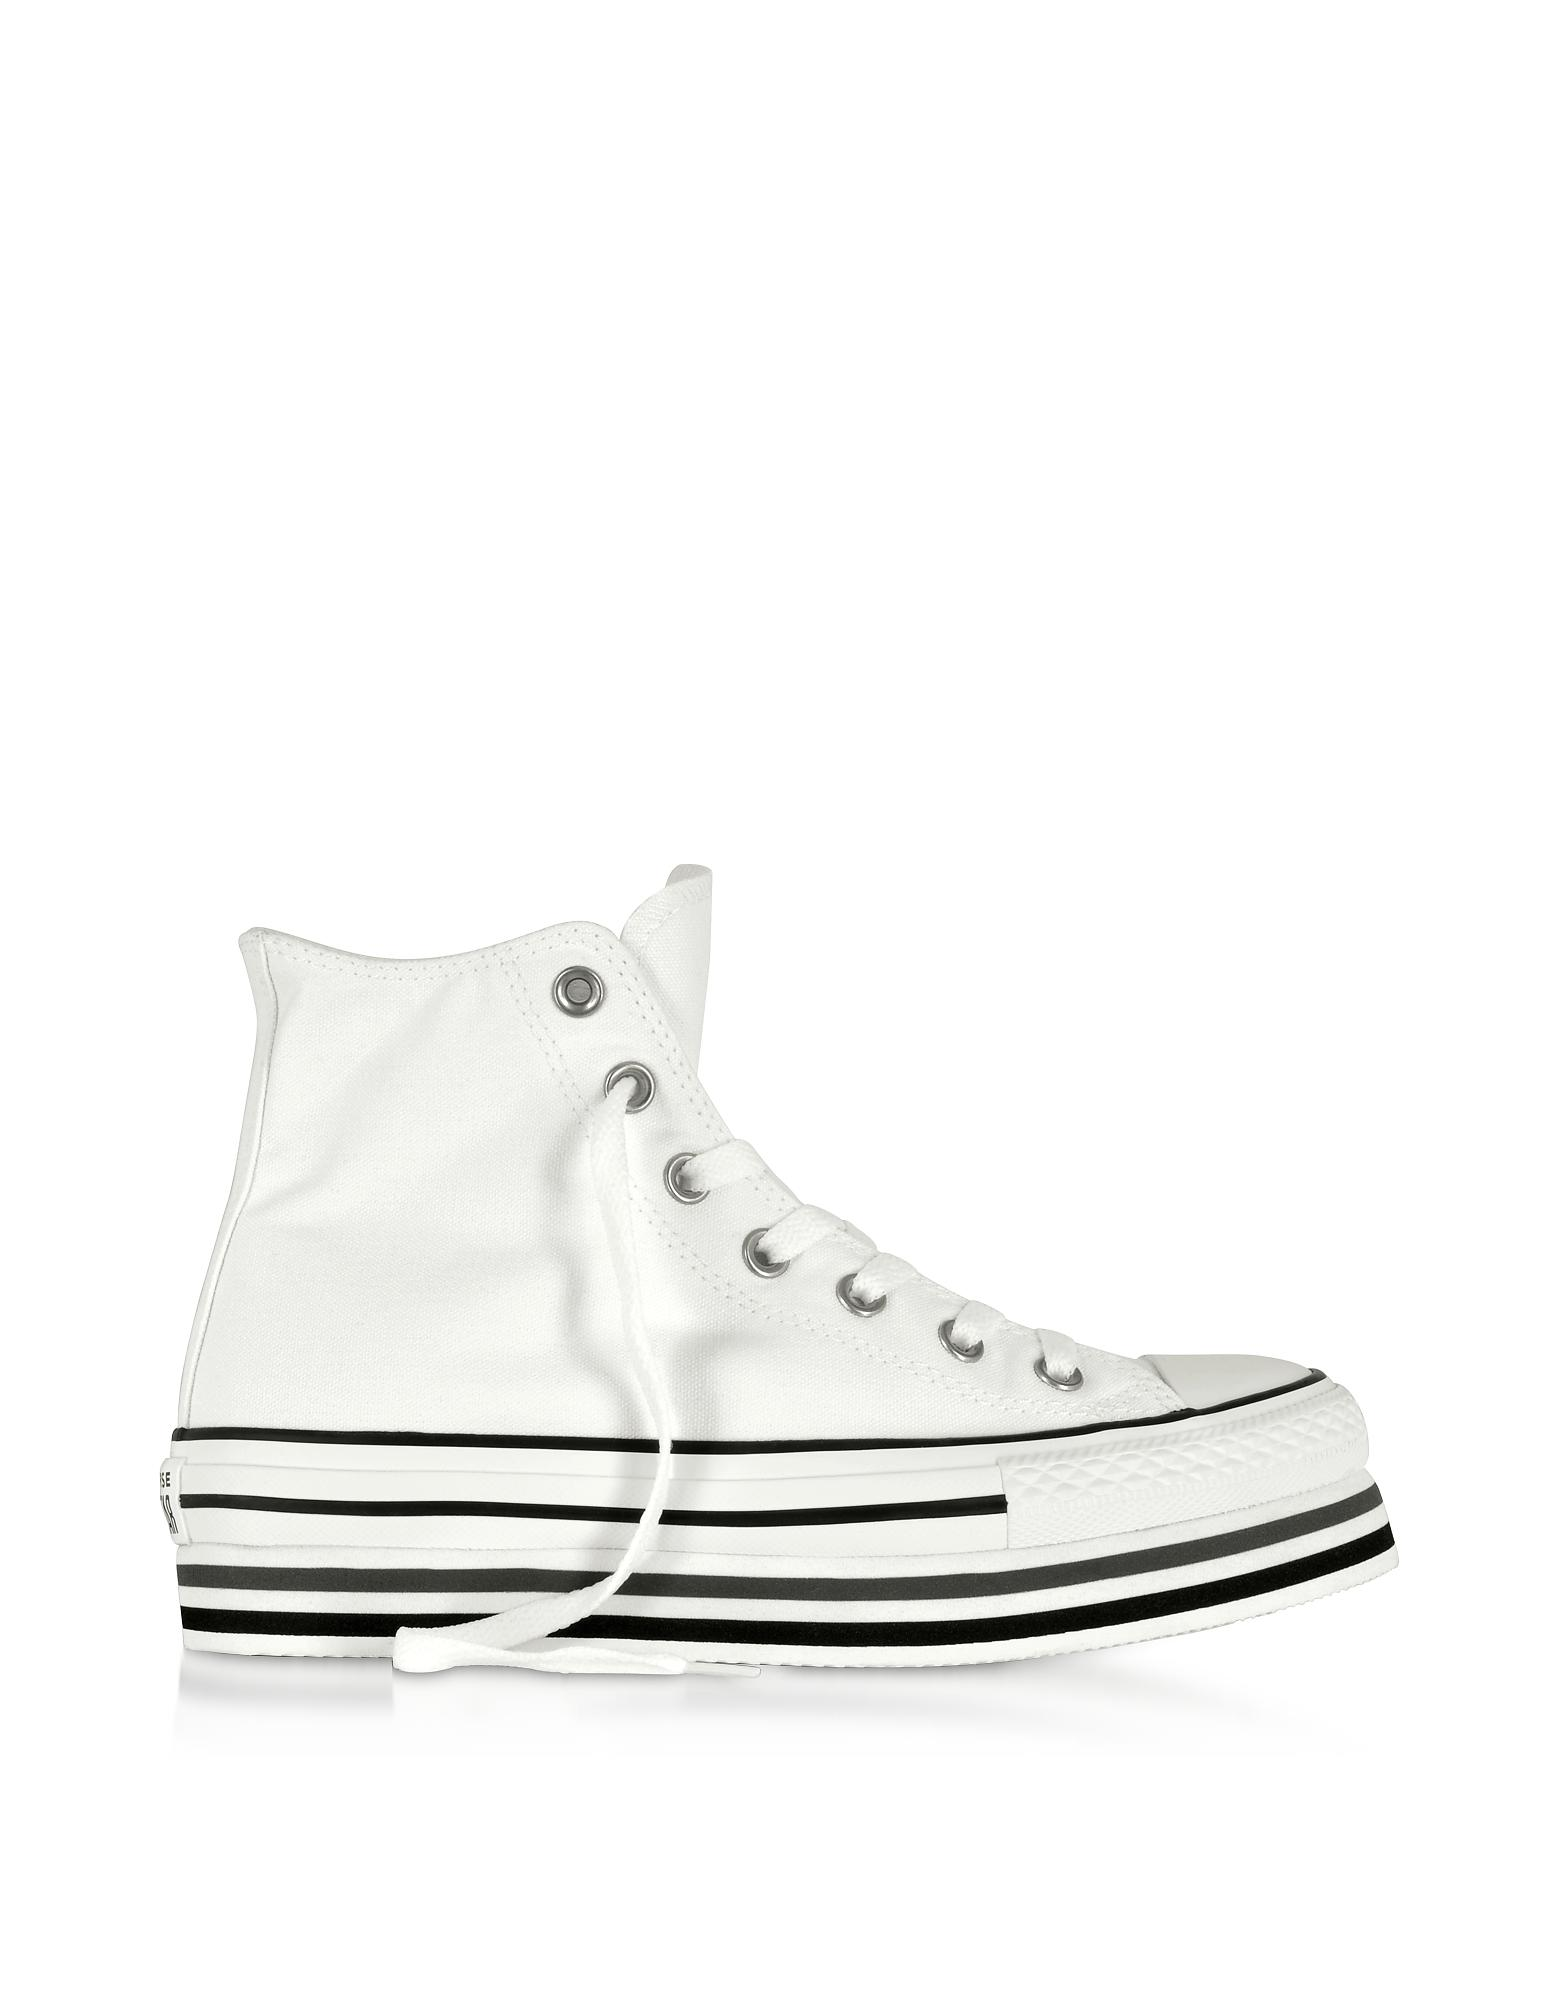 Women's Black Chuck Taylor All Star Platform Layer White Trainers